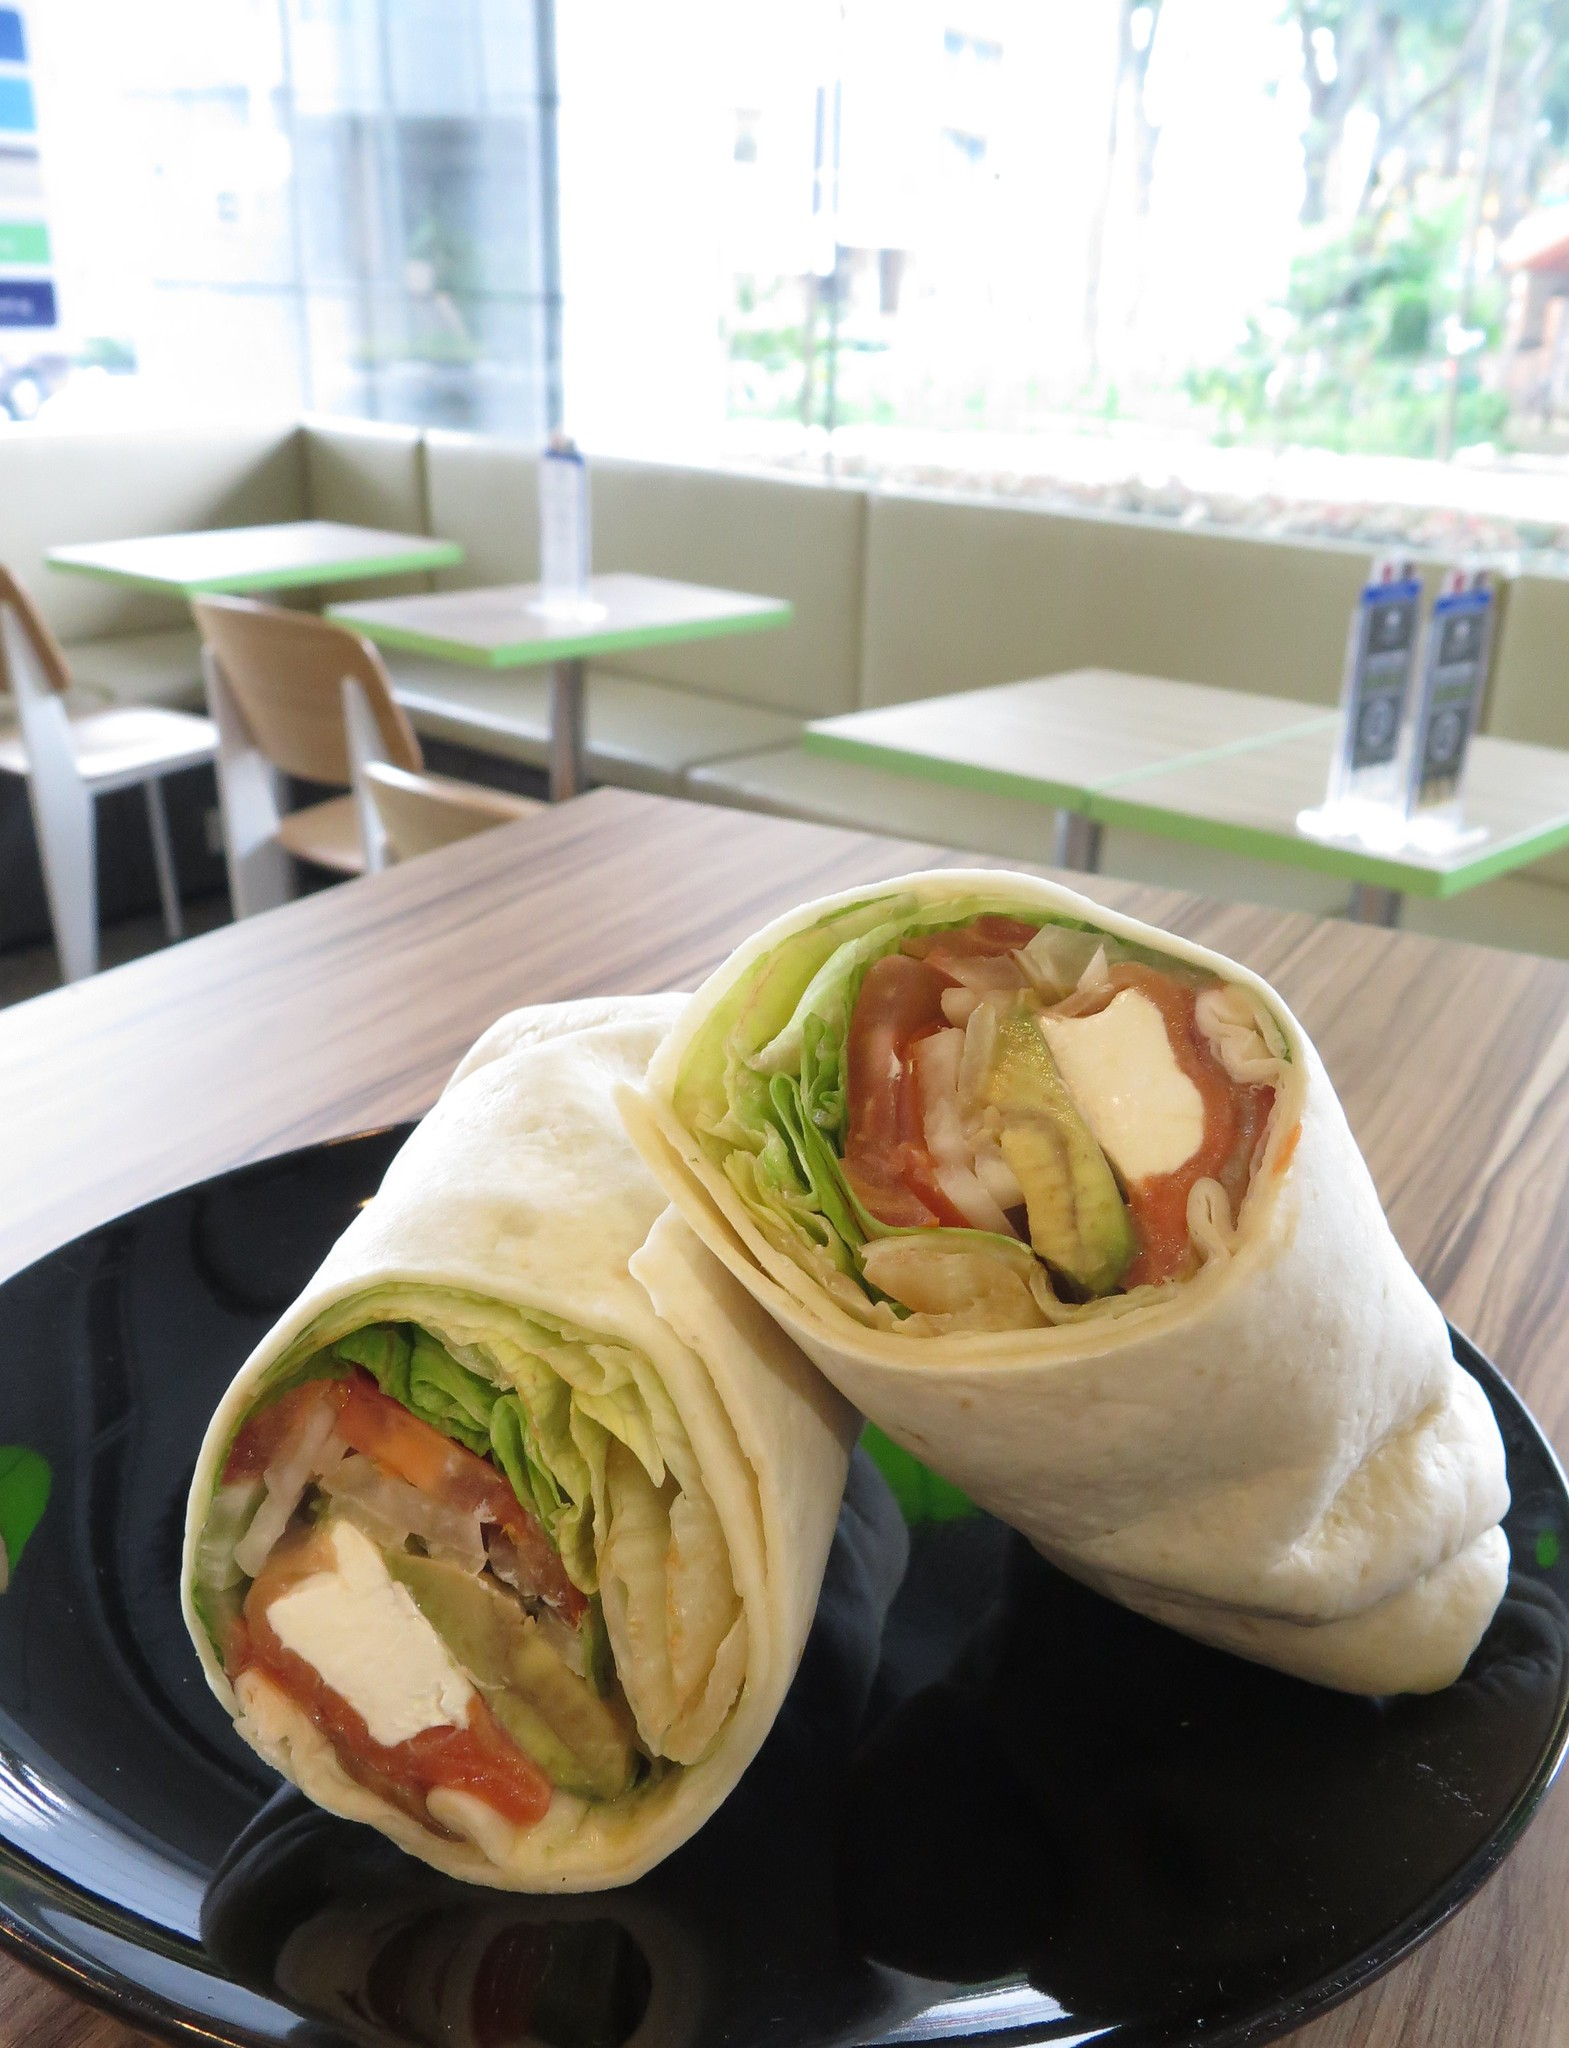 Smoked Salmon & Avocado Wrap